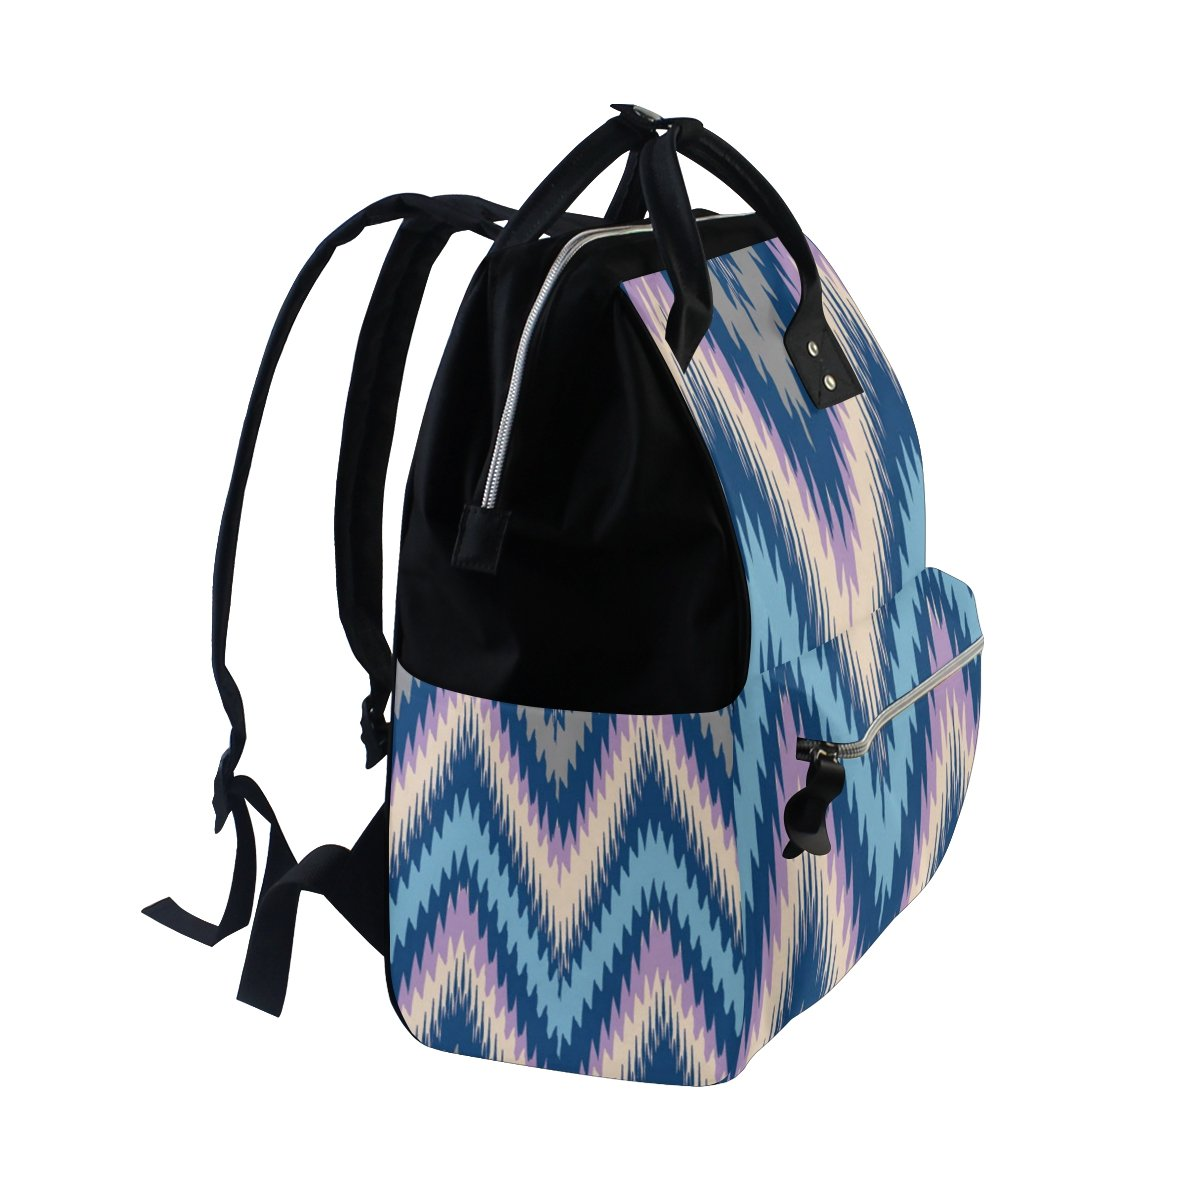 Diaper Bags Backpack Purse Mummy Backpack Fashion Mummy Maternity Nappy Bag Cool Cute Travel Backpack Laptop Backpack with Ethnic Blue Detail Daypack for Women Girls Kids